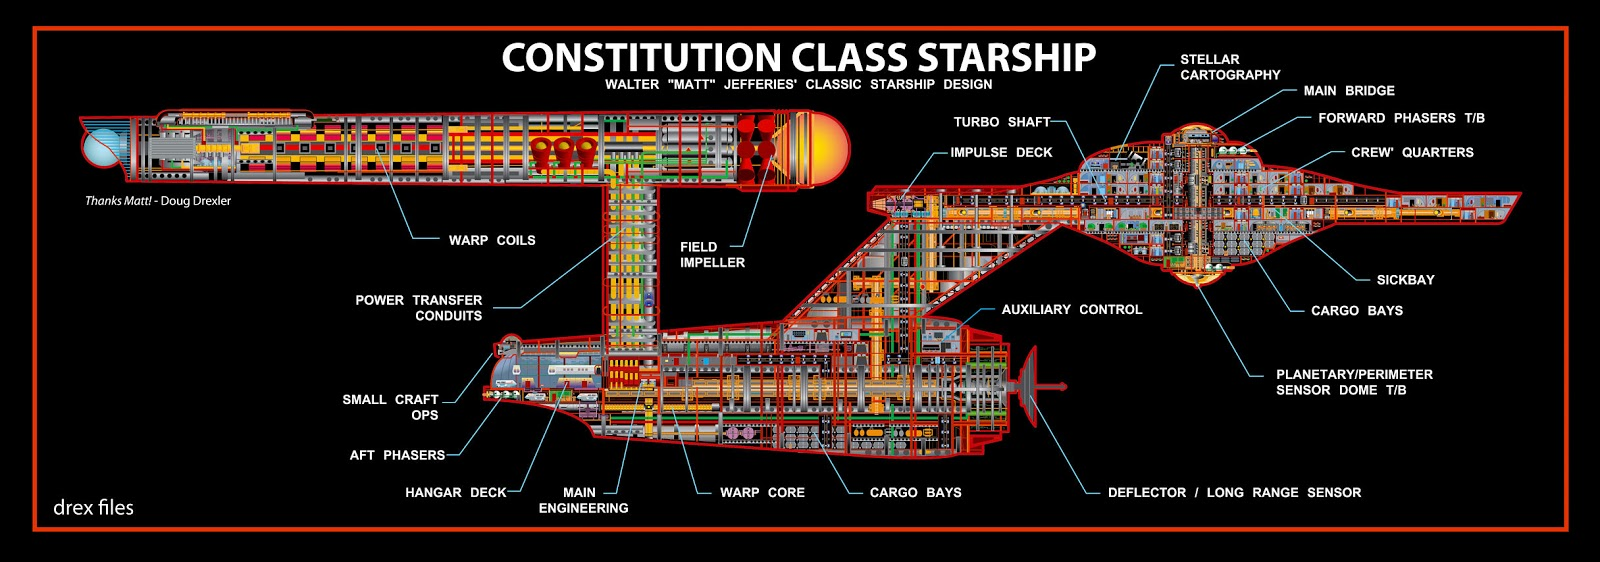 Star Trek Enterprise Cross Section